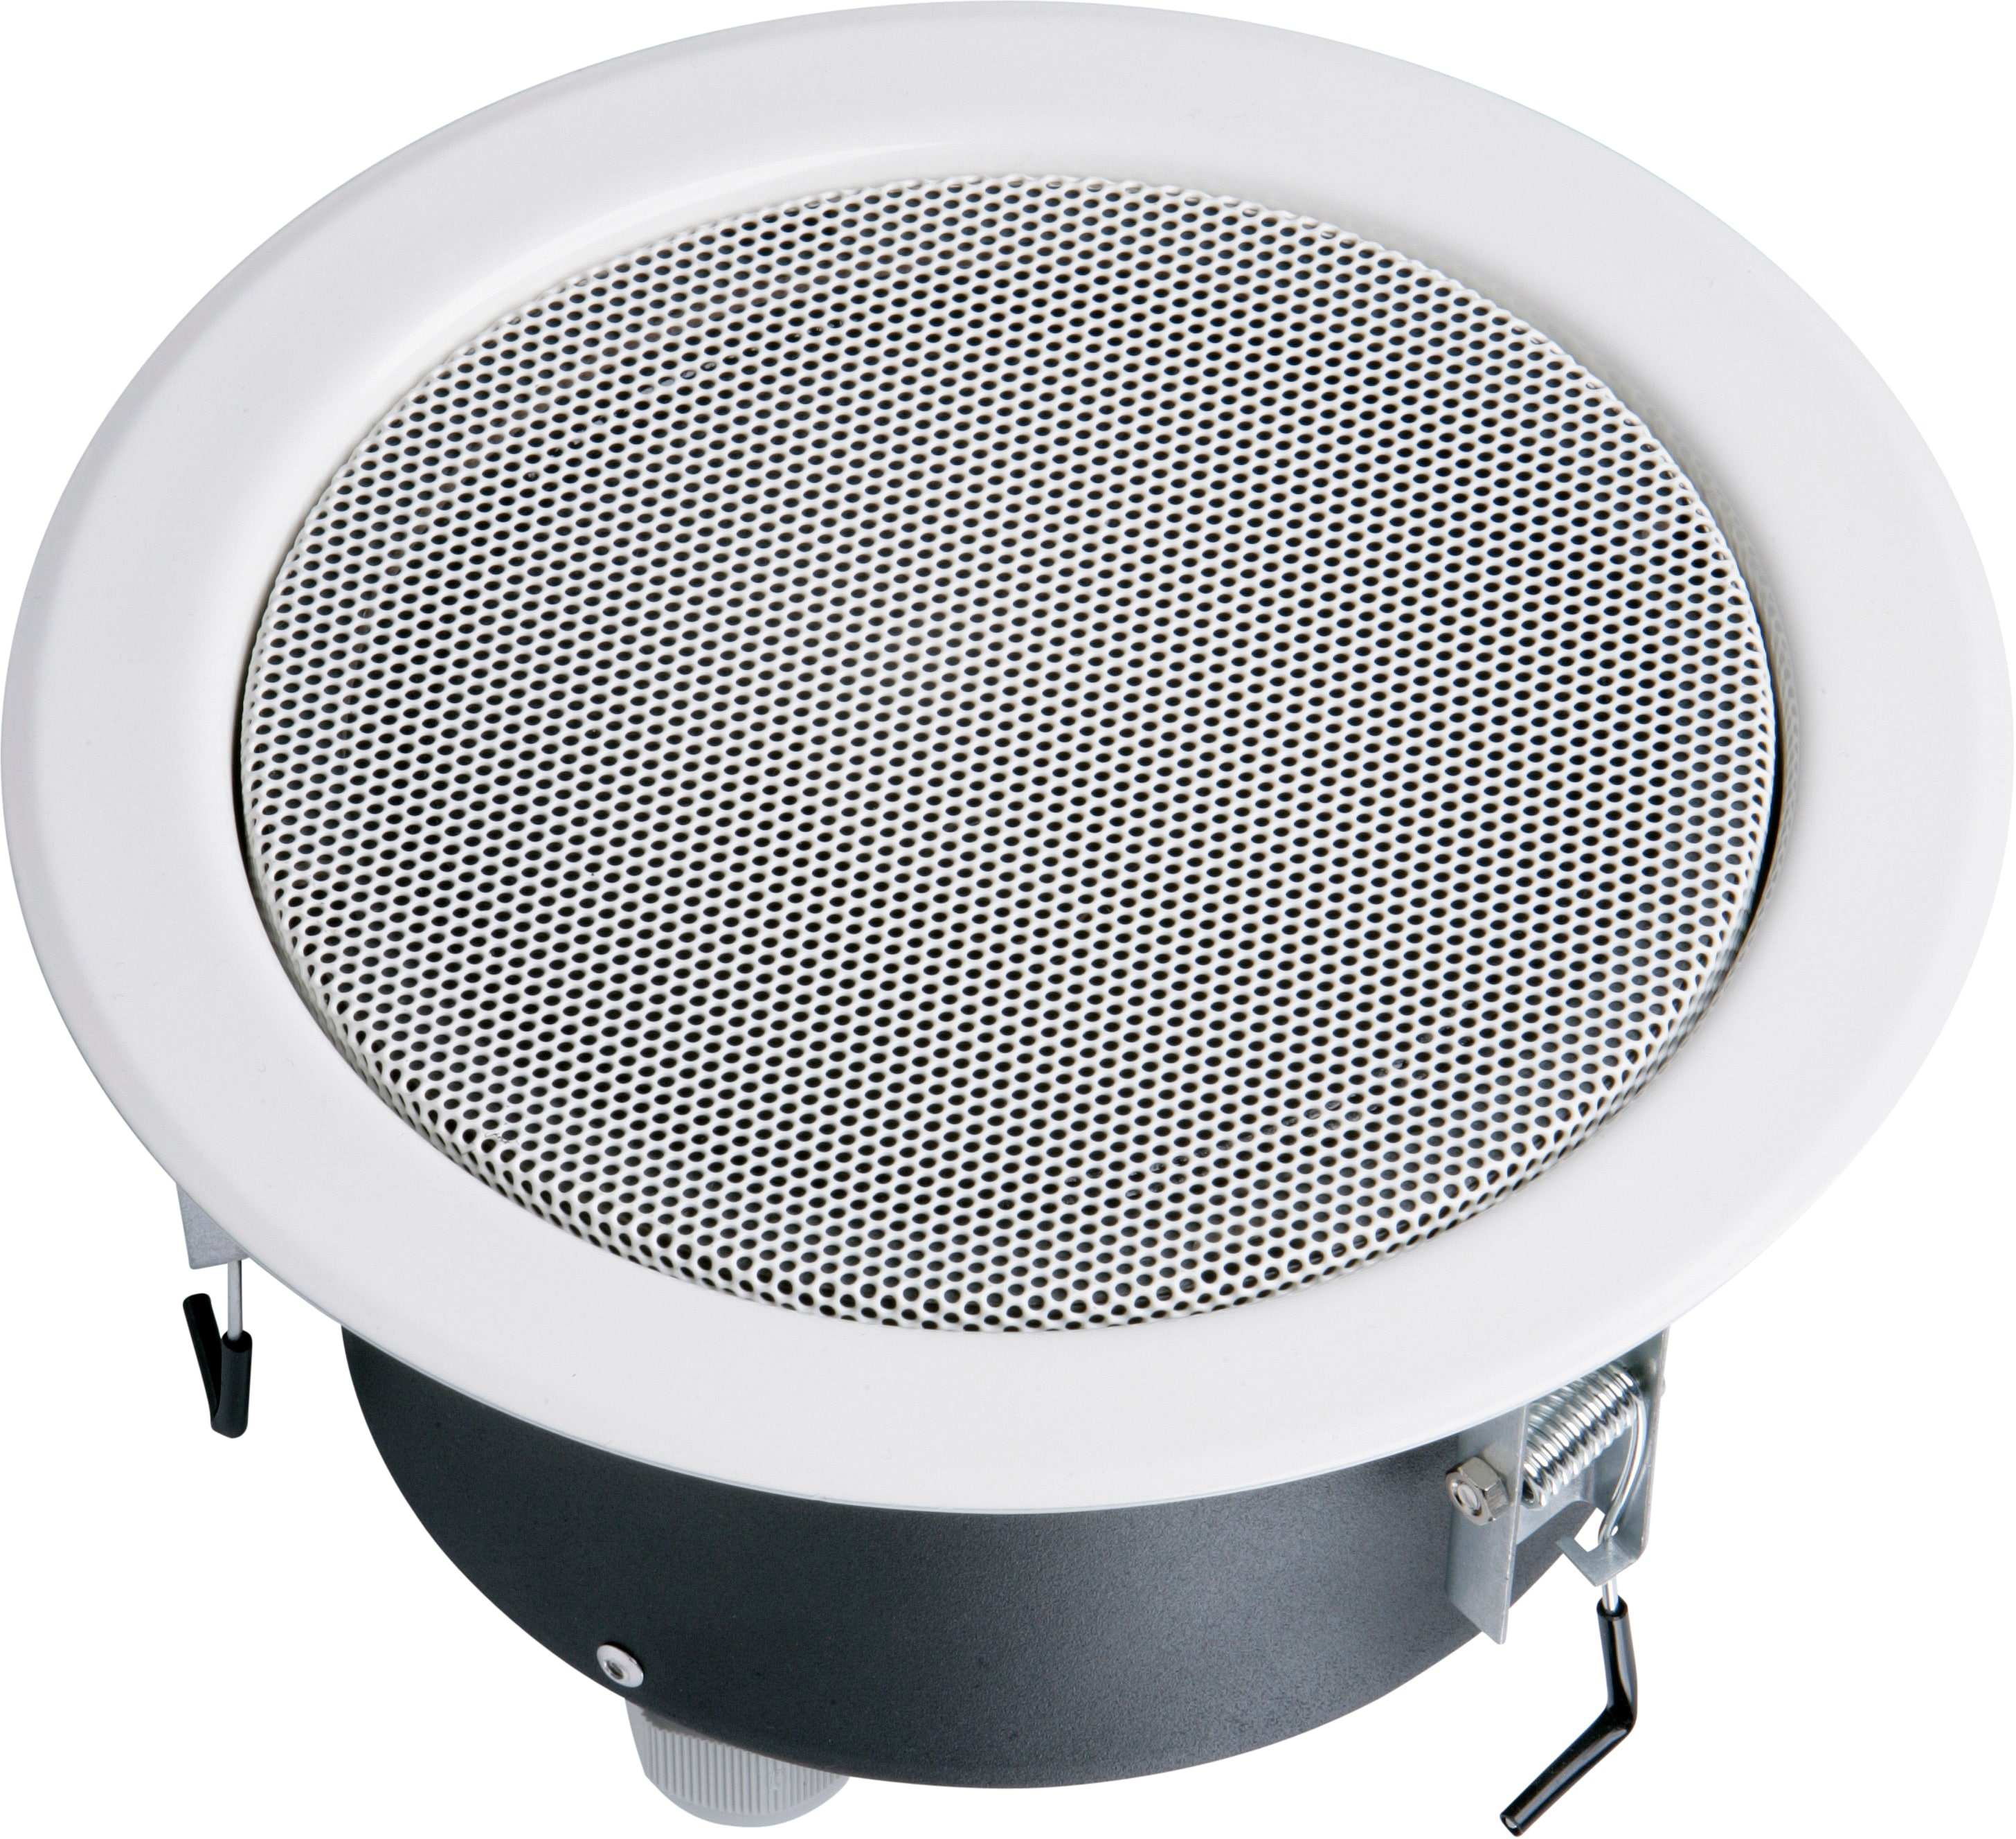 loading itm in sound ceilings driver compression is atlas a image ceiling coaxial speaker